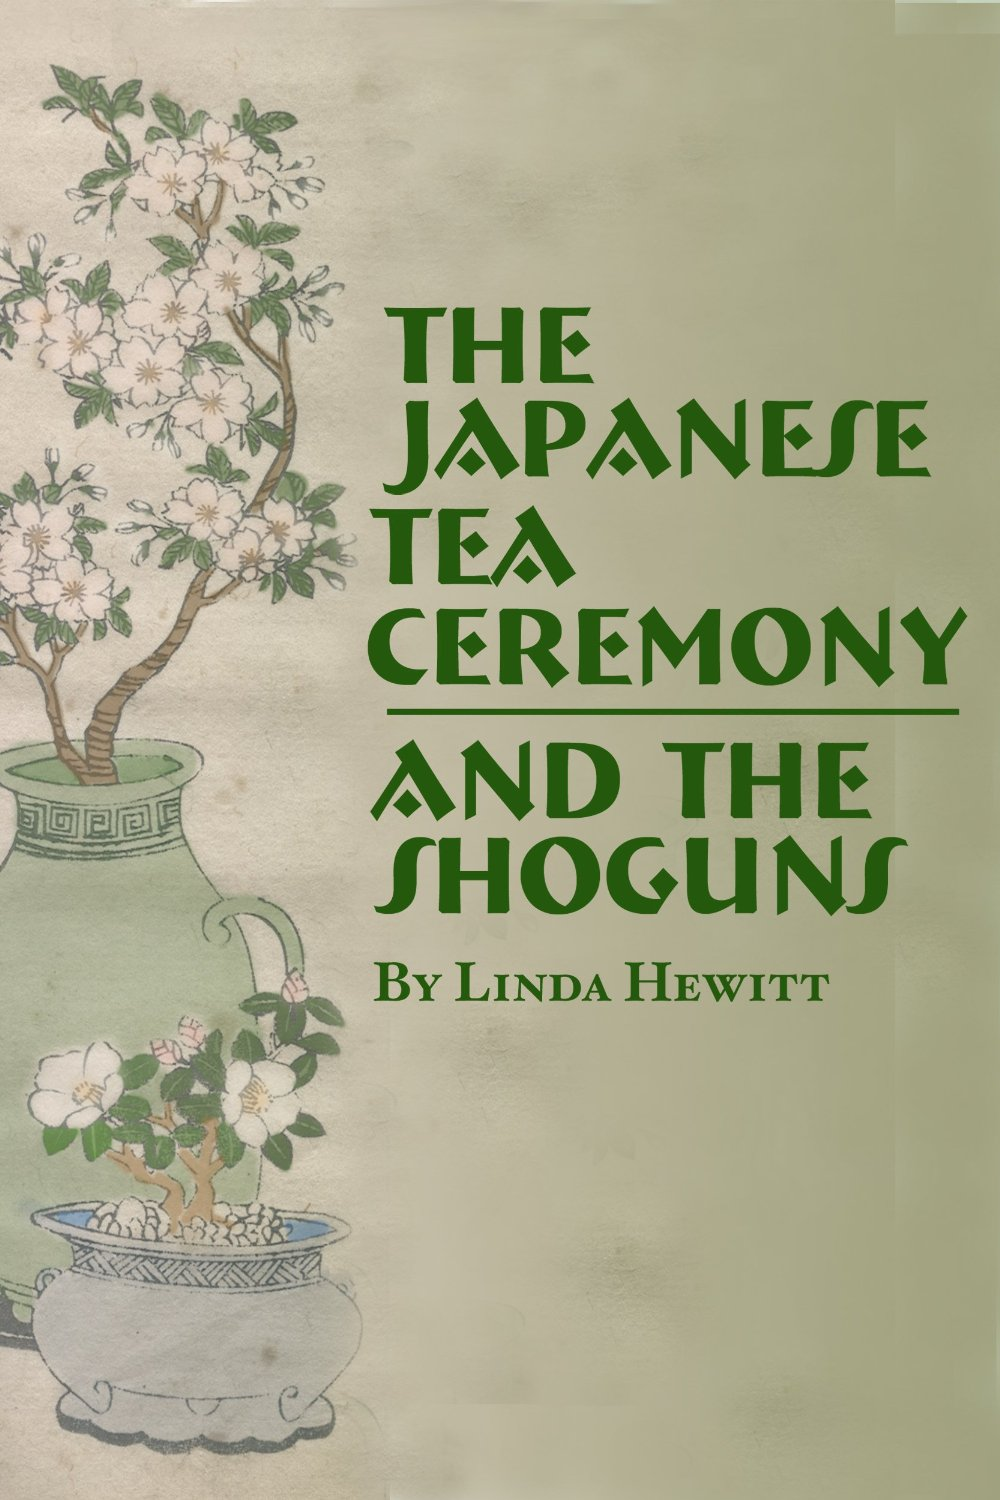 The Japanese Tea Ceremony and The Shoguns